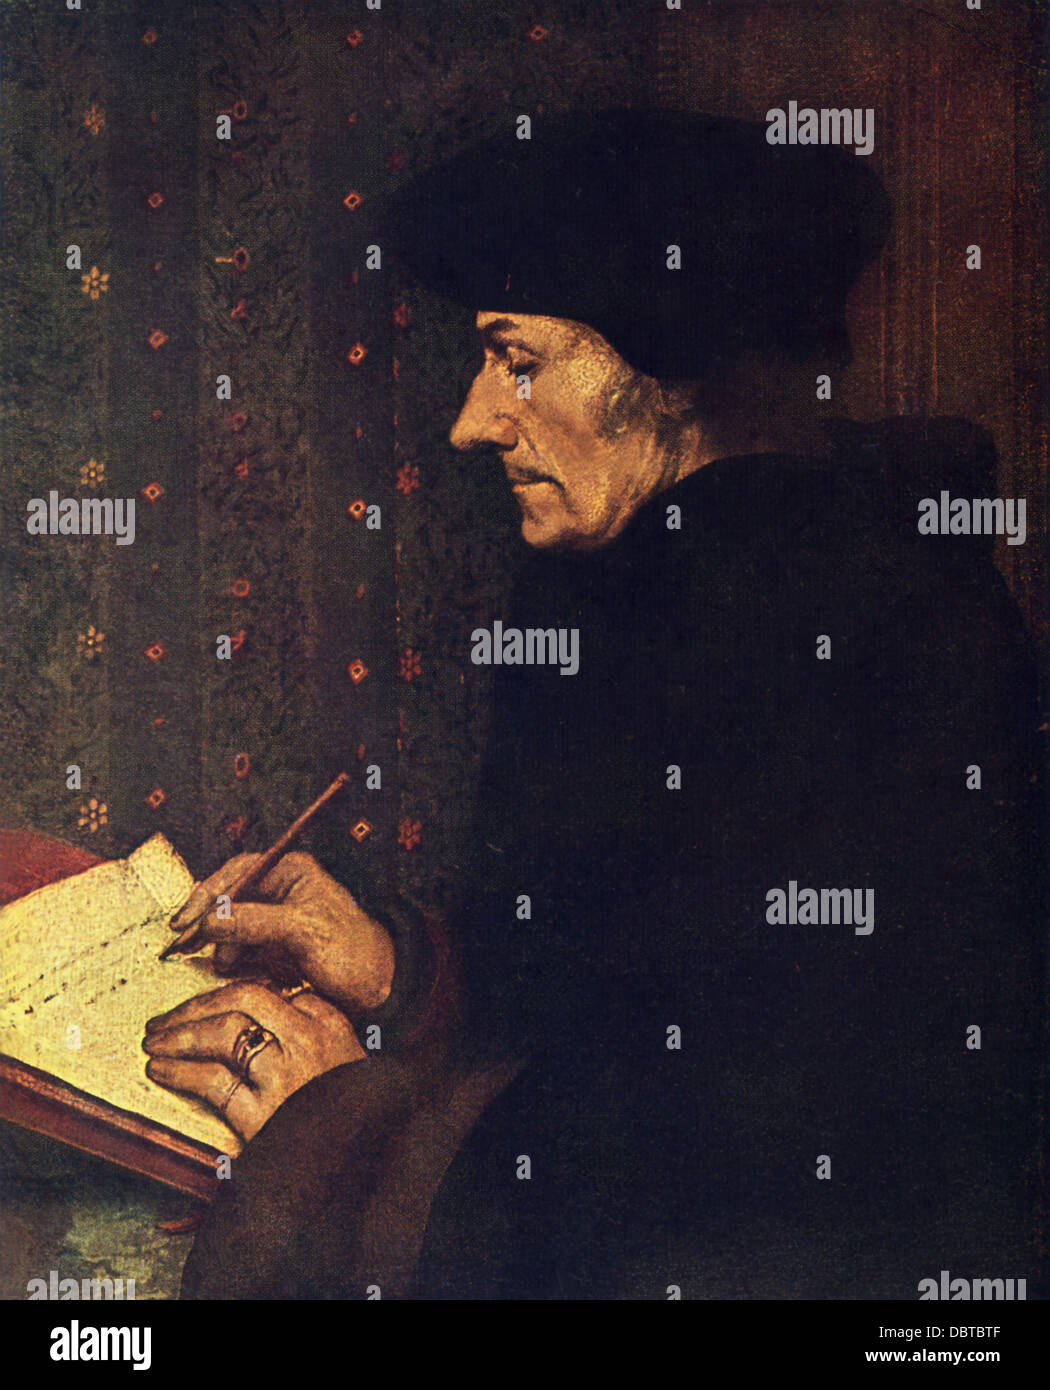 Hans Holbein the Younger (1497-1543), outstanding artist of German Renaissance, painted this portrait of Erasmus - Stock Image